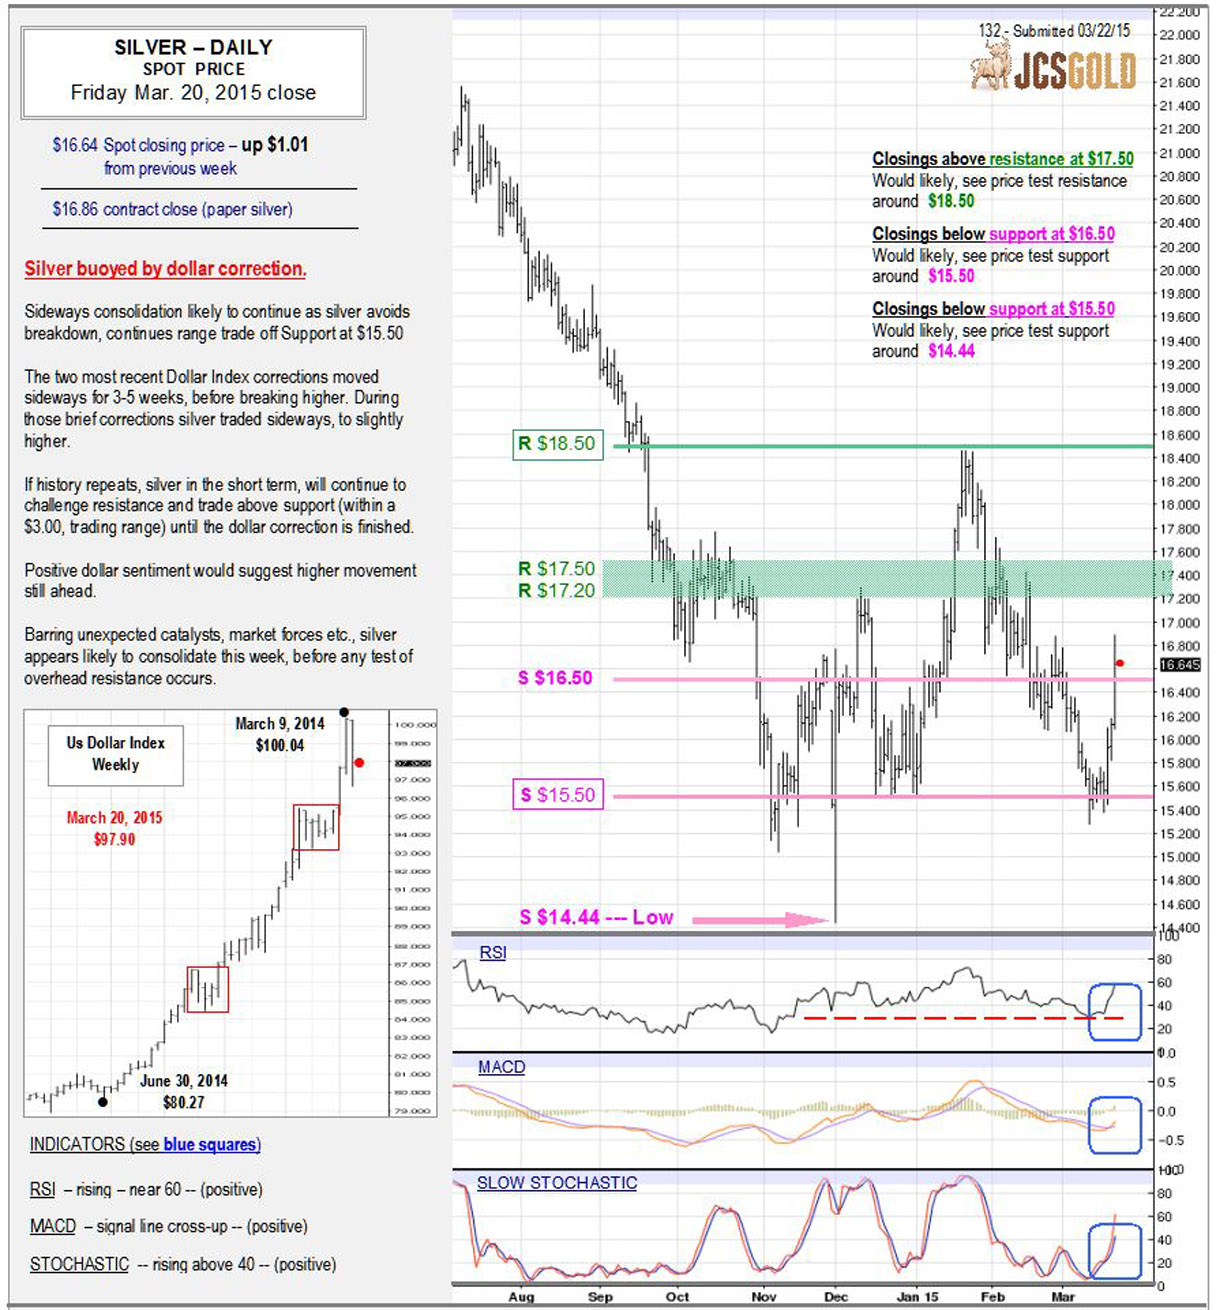 Mar 20, 2015 chart & commentary